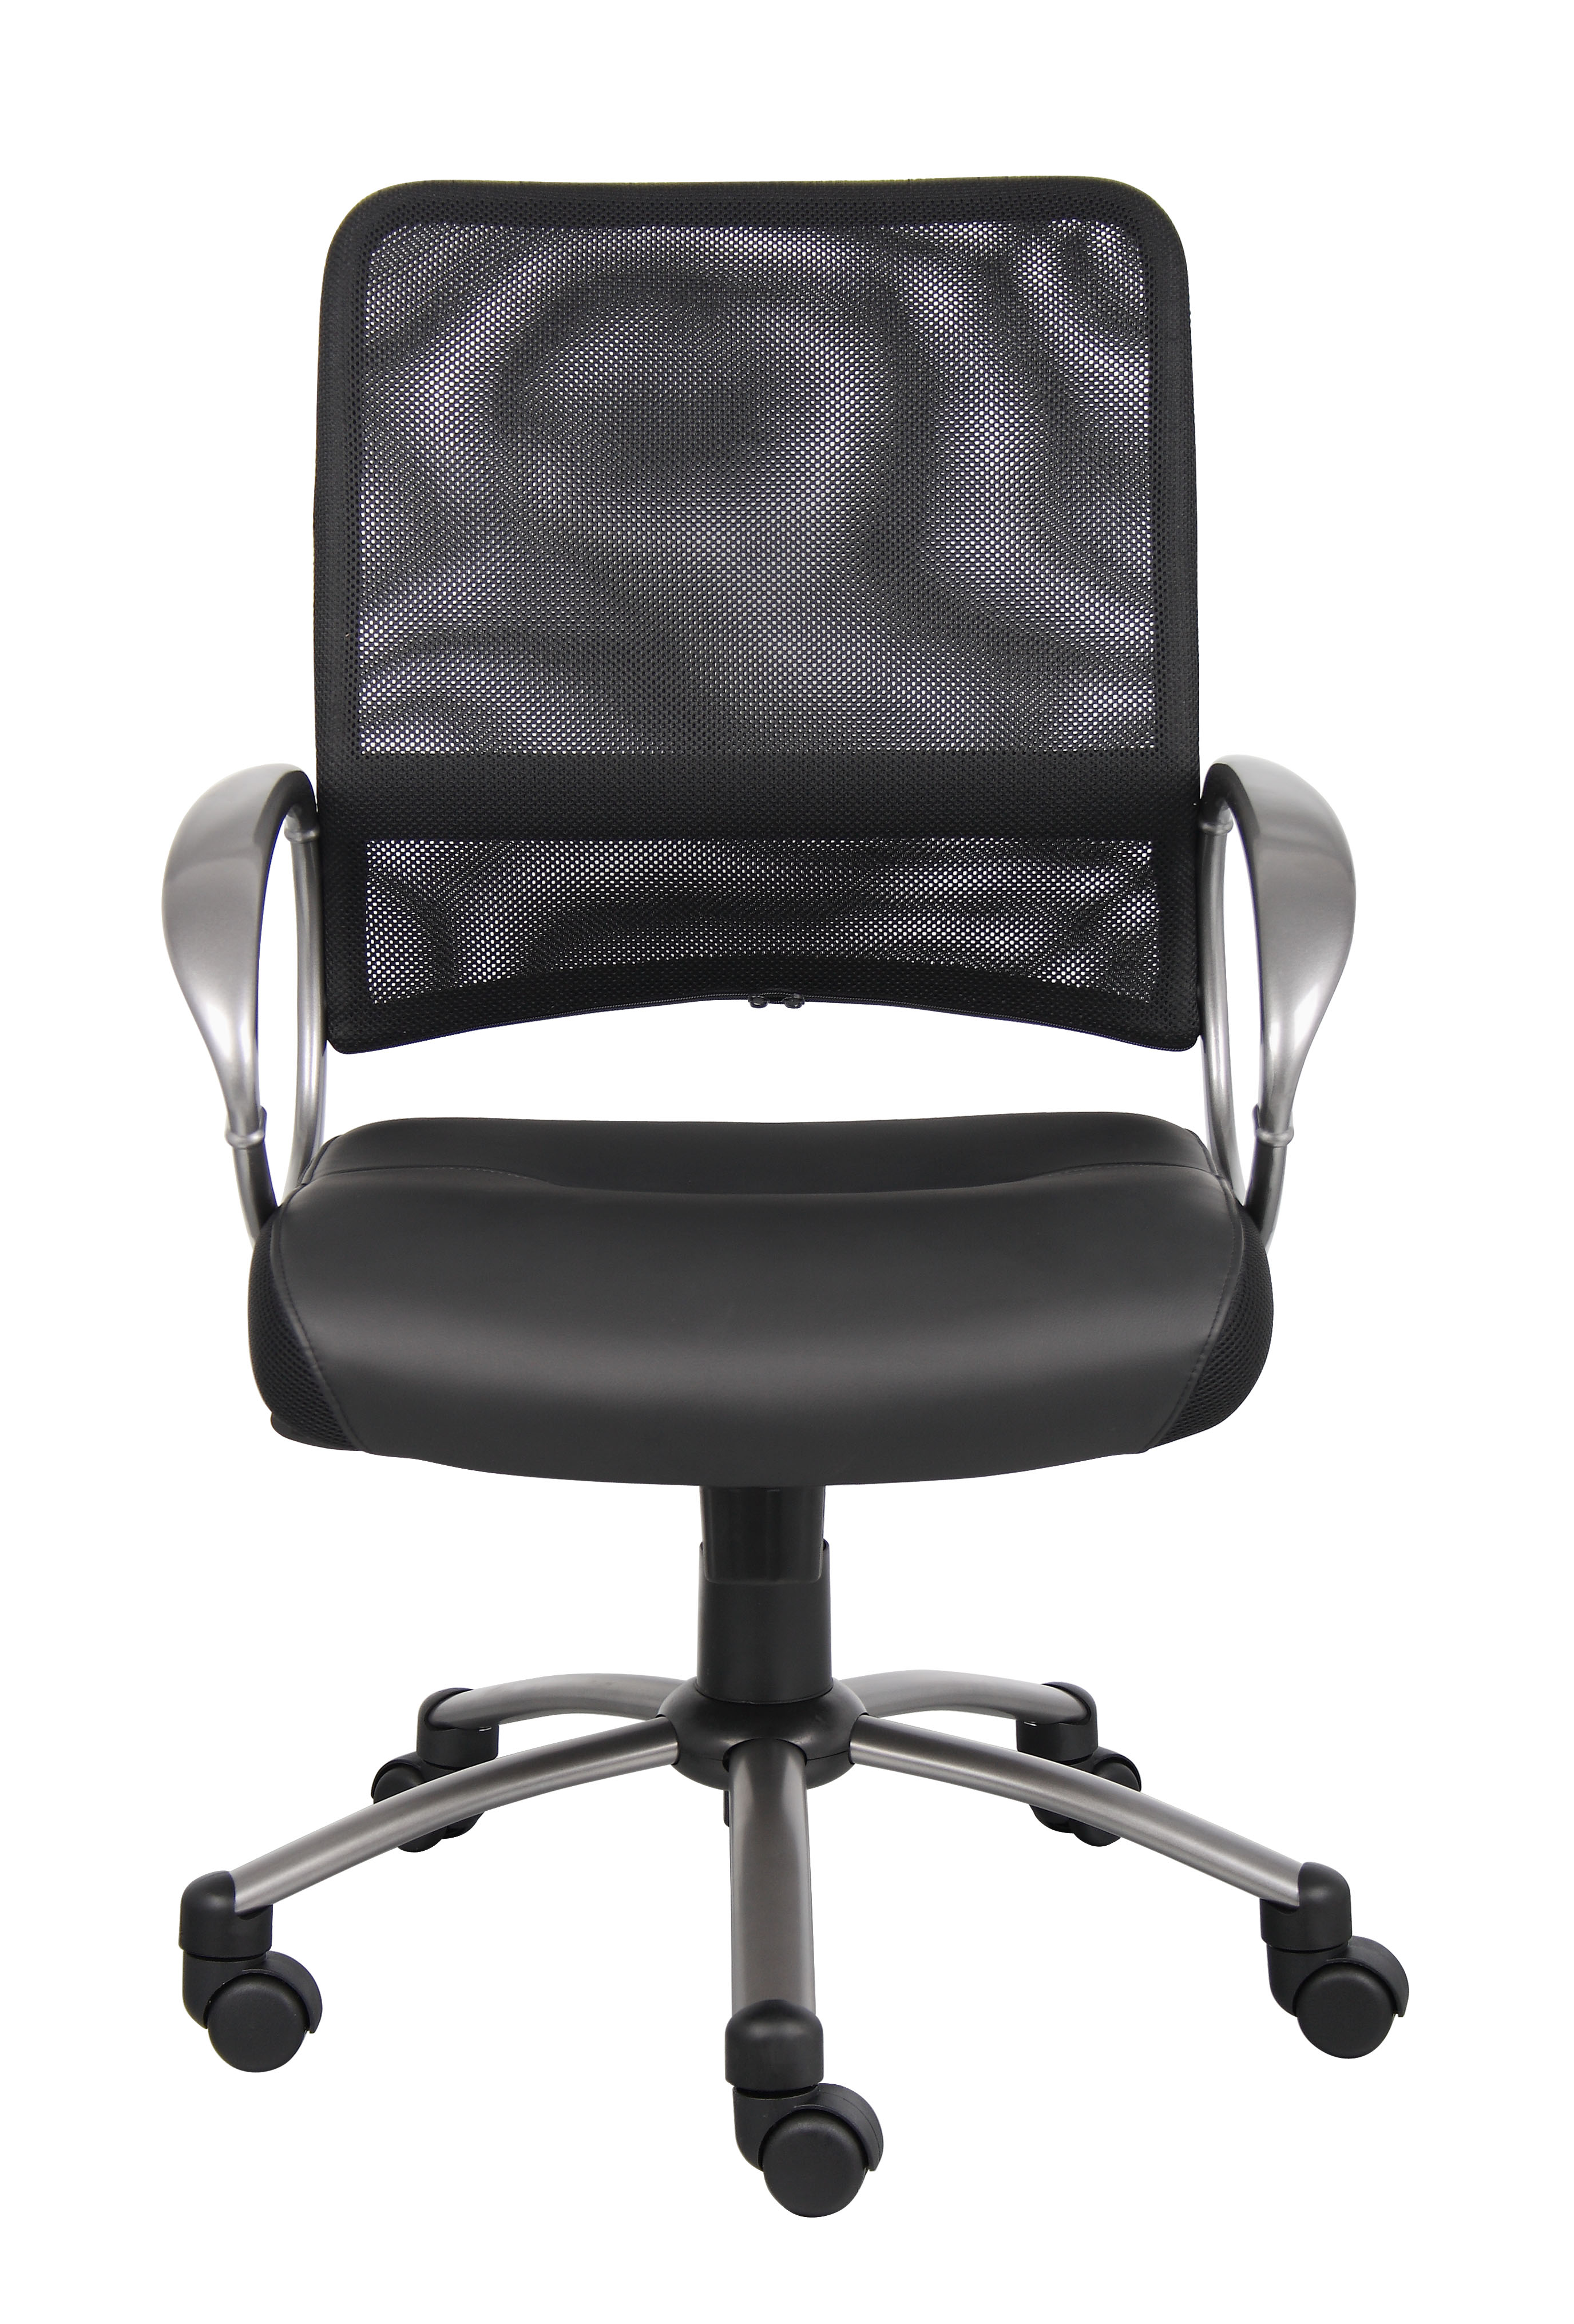 most expensive chair lift red leather office boss mesh back w pewter finish task  bosschair